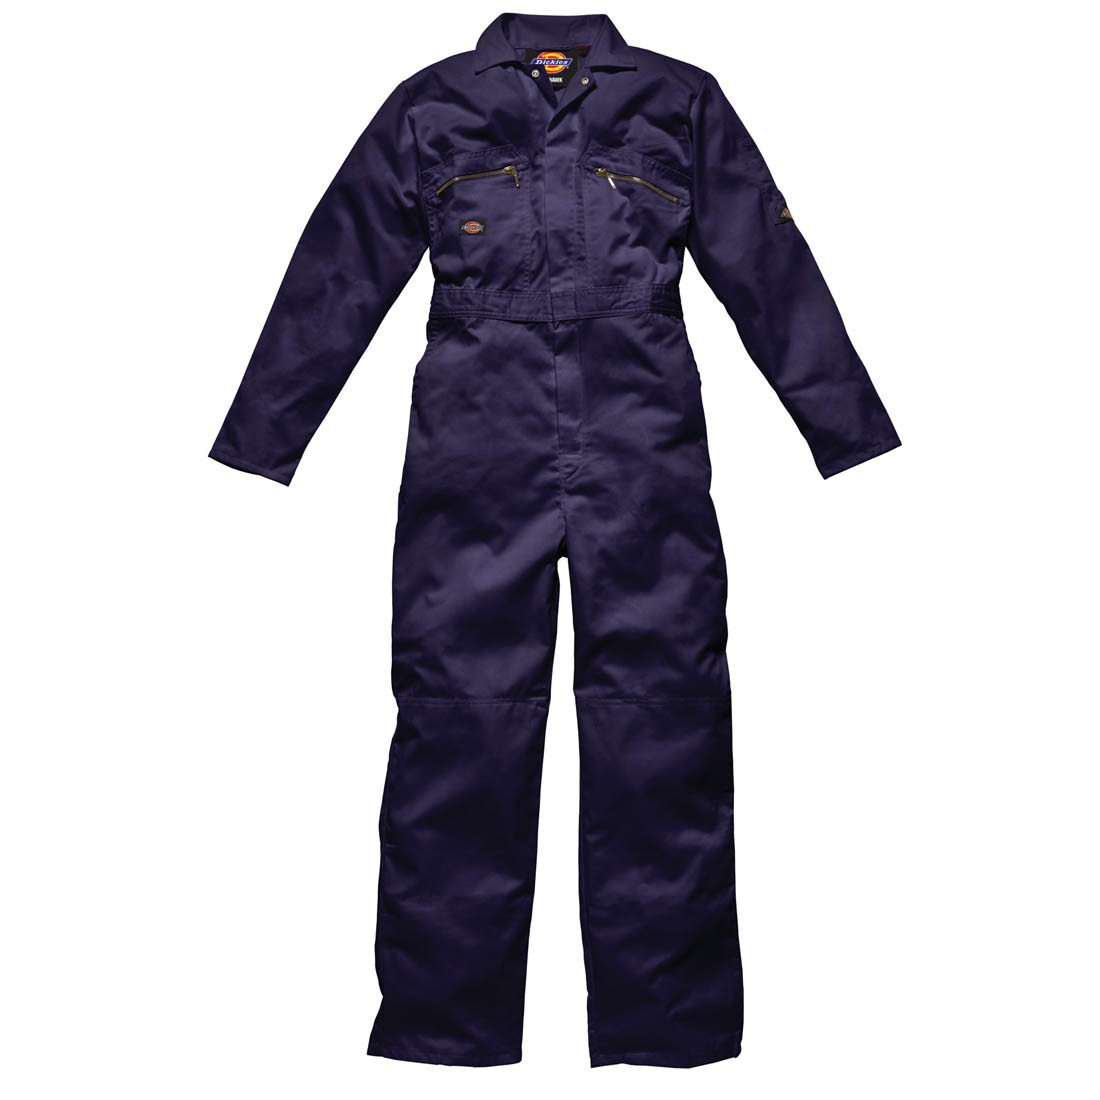 Dickies Redhawk Coverall - Navy Blue - 48 R